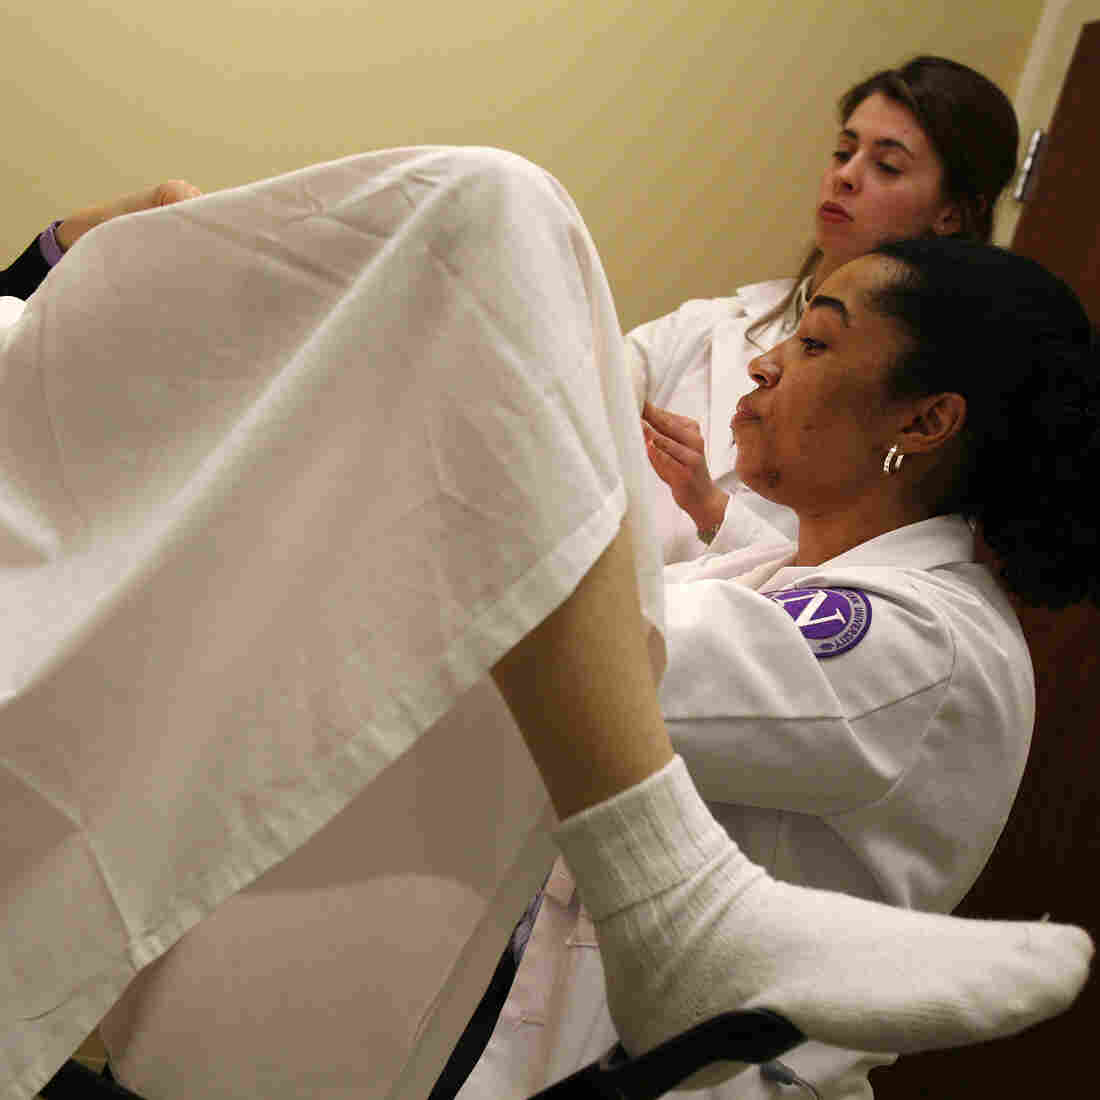 First-year medical student Michelle Gentile assists her classmate Abbie Harts as she performs a pelvic exam on a volunteer at Northwestern University.